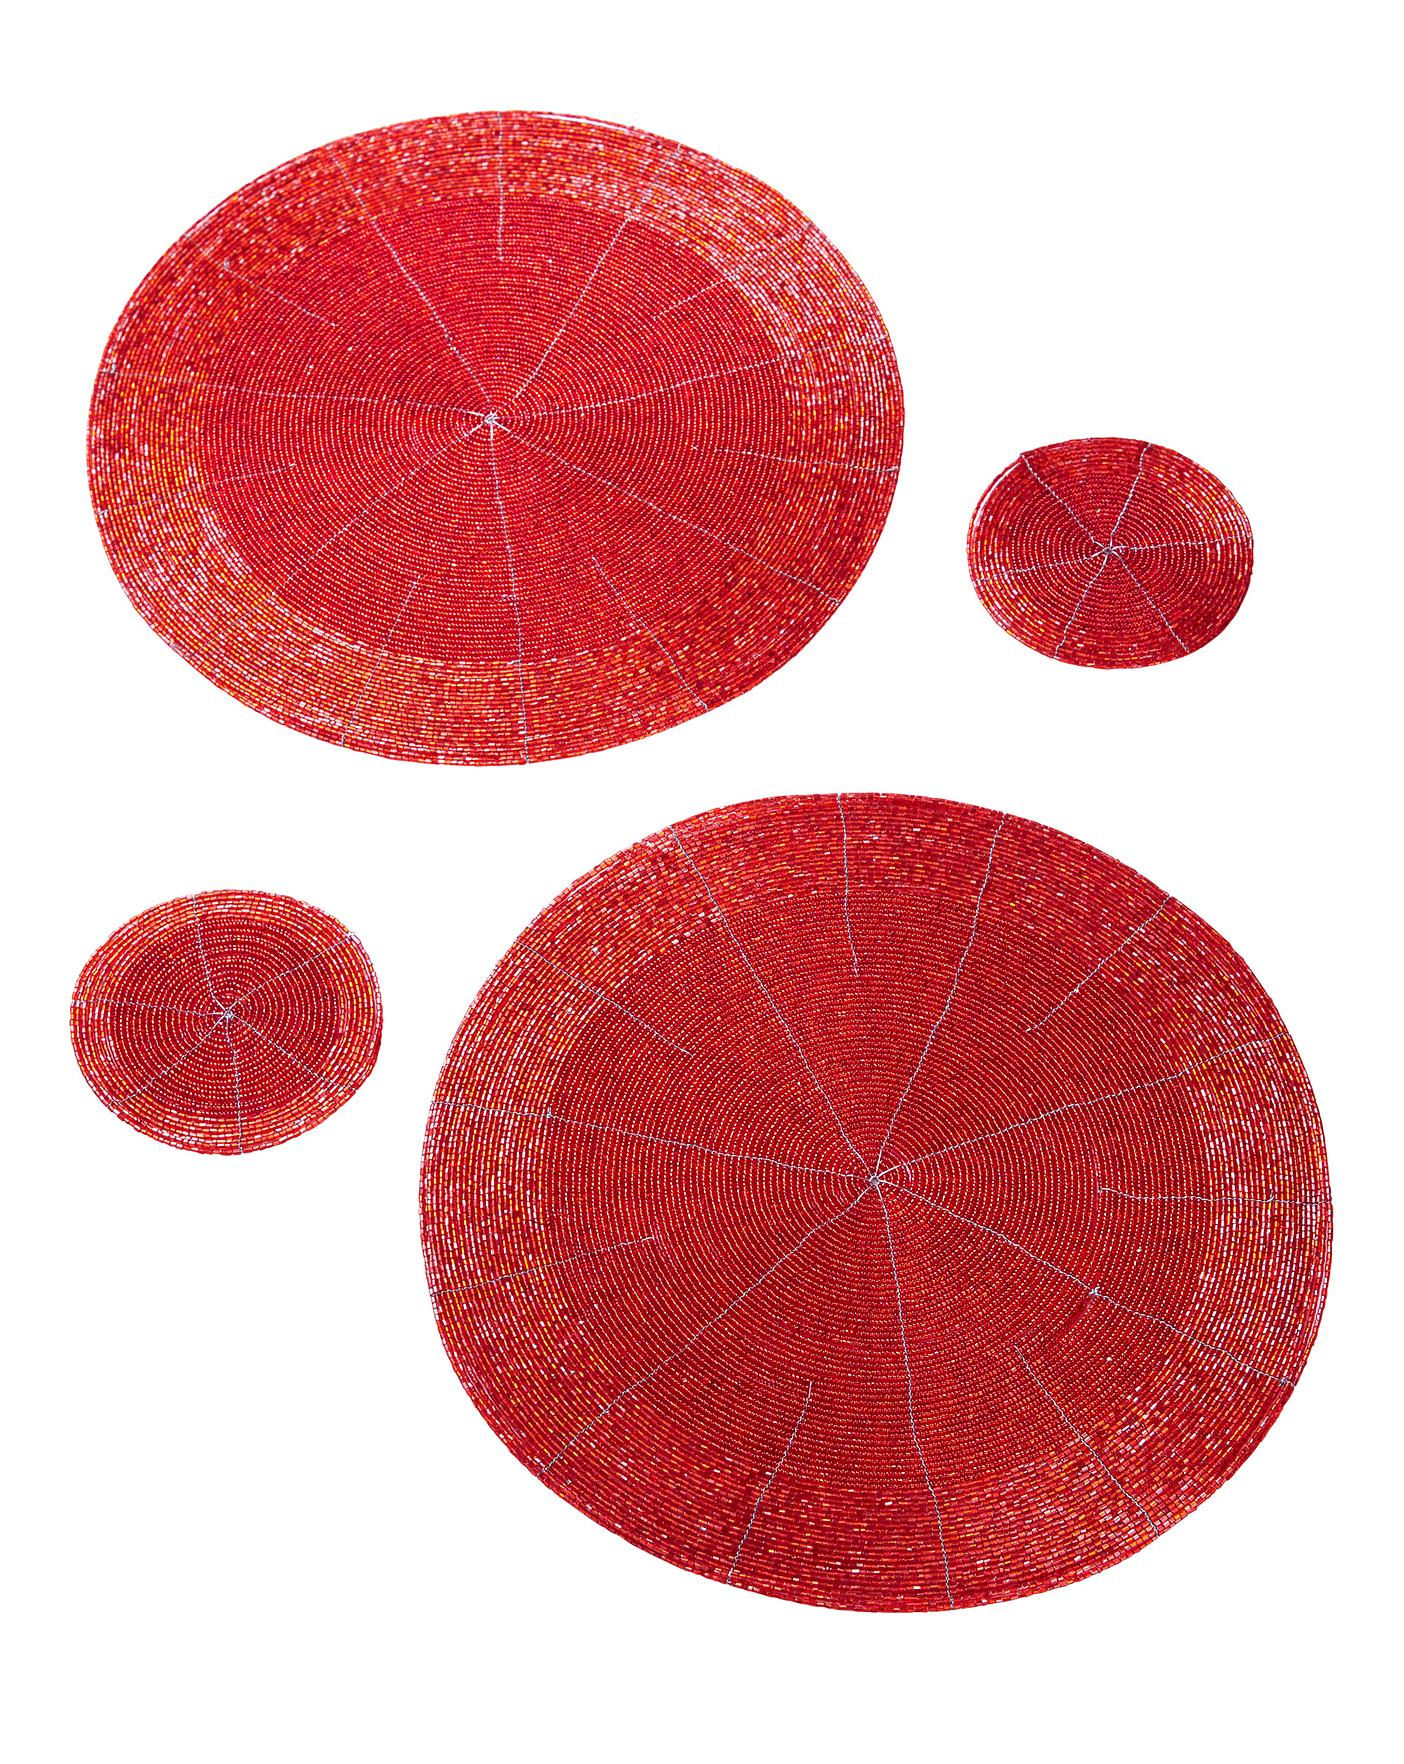 Beaded Round 2 Placemats Coasters Red